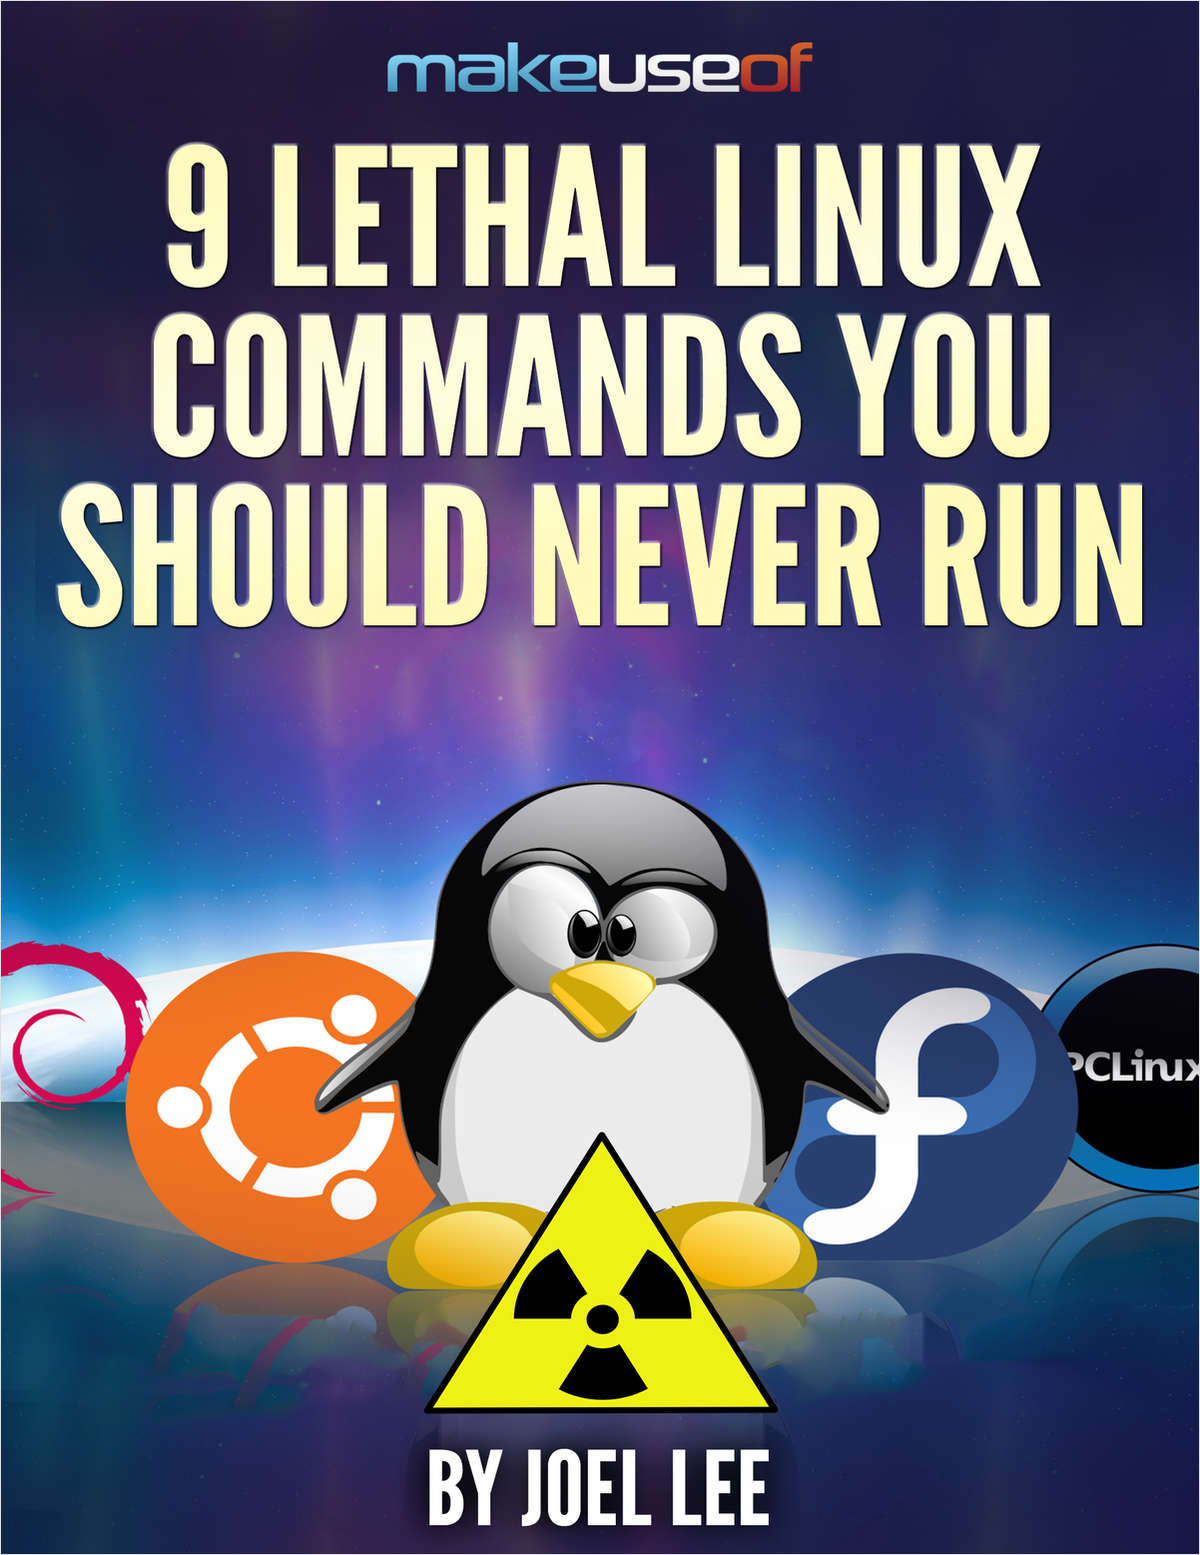 9 Lethal Linux Commands You Should Never Run